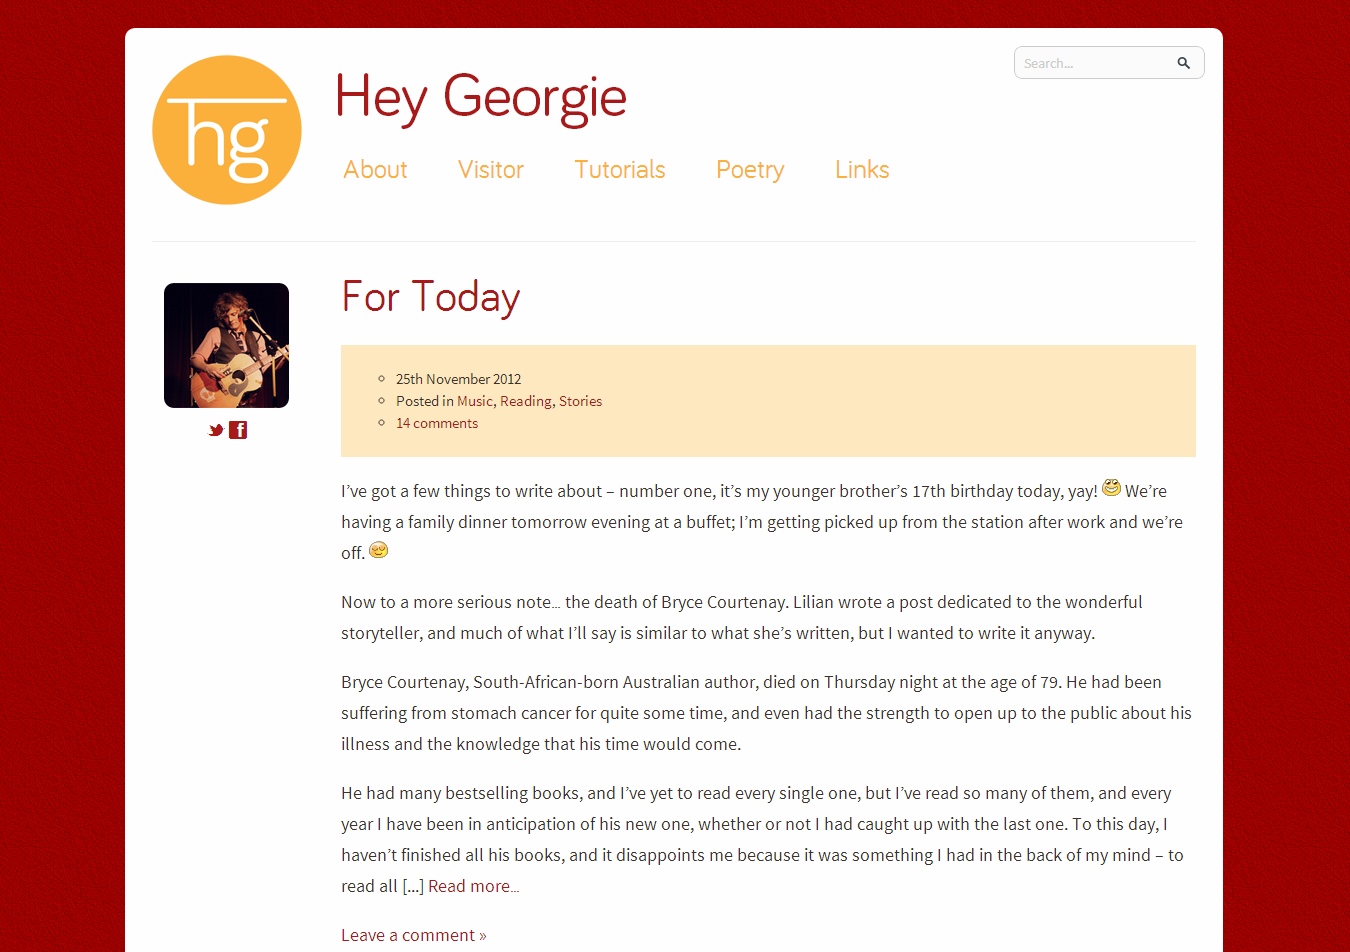 A screenshot of a blog with a red and orange theme